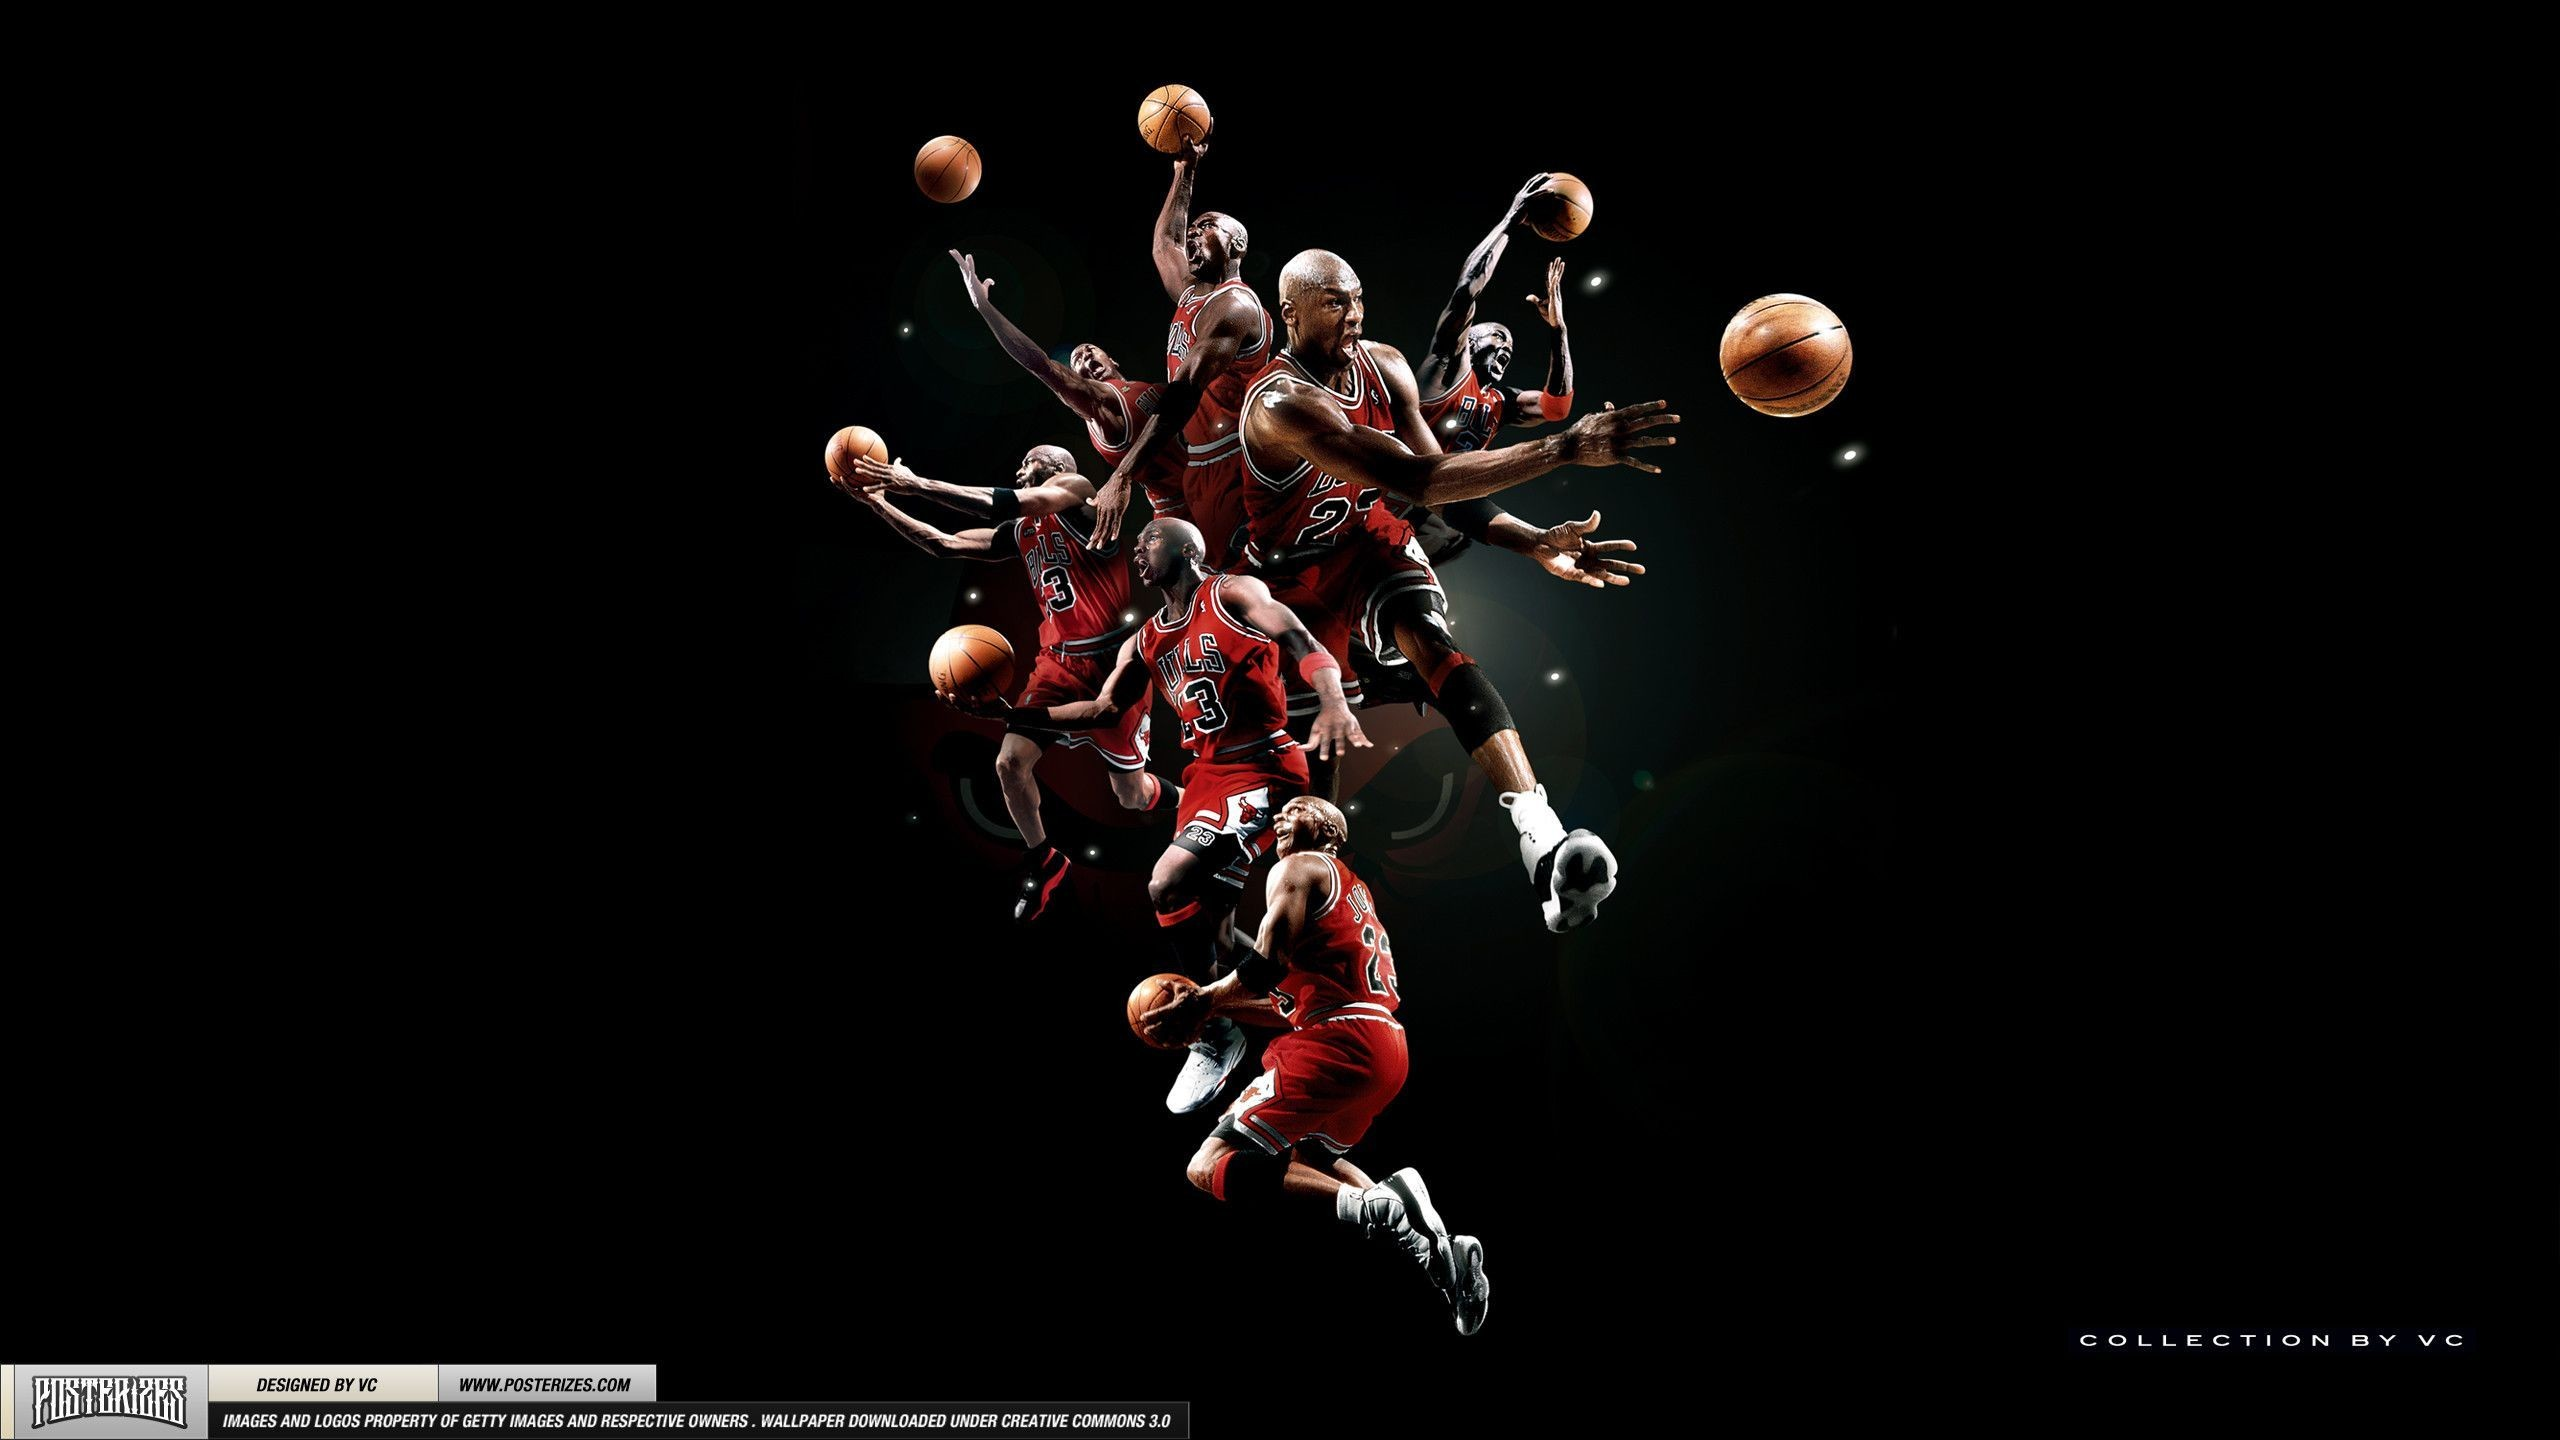 2560x1440 Jordan HD Wallpapers Wallpaper · Chicago Bulls ...